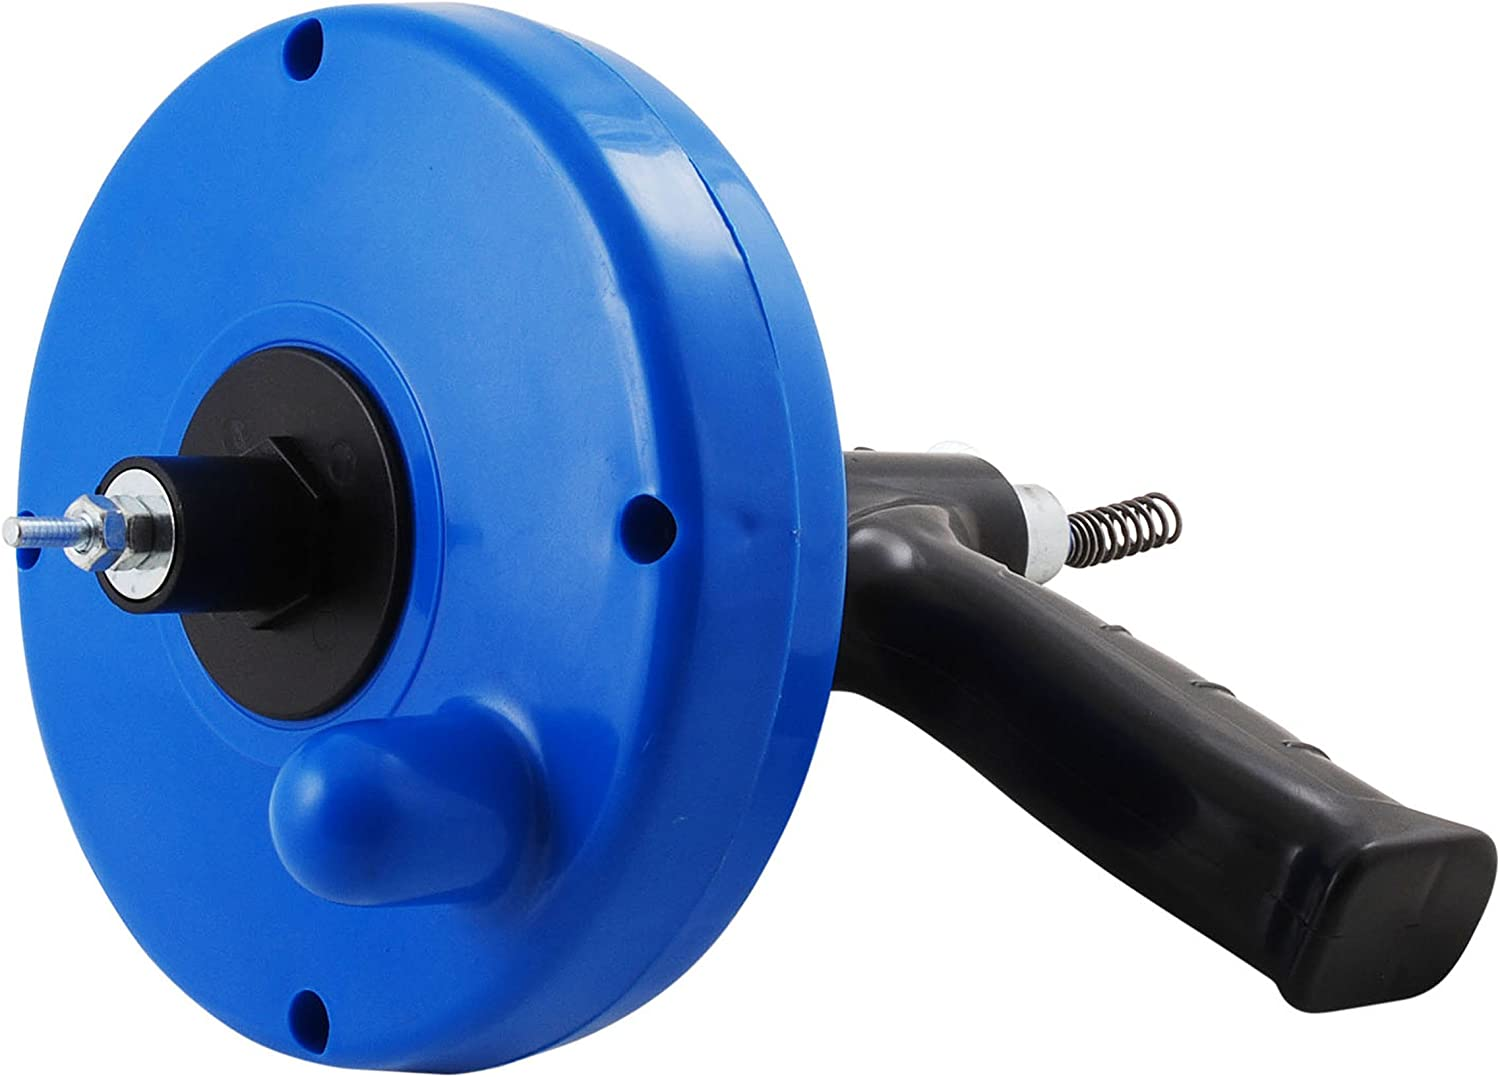 LDR Industries 512 1025 Drum Auger, 25-Feet Plumbing Drill Adapter Snake Clog Remover for Bathtub Drain, Shower and Kitchen Sink